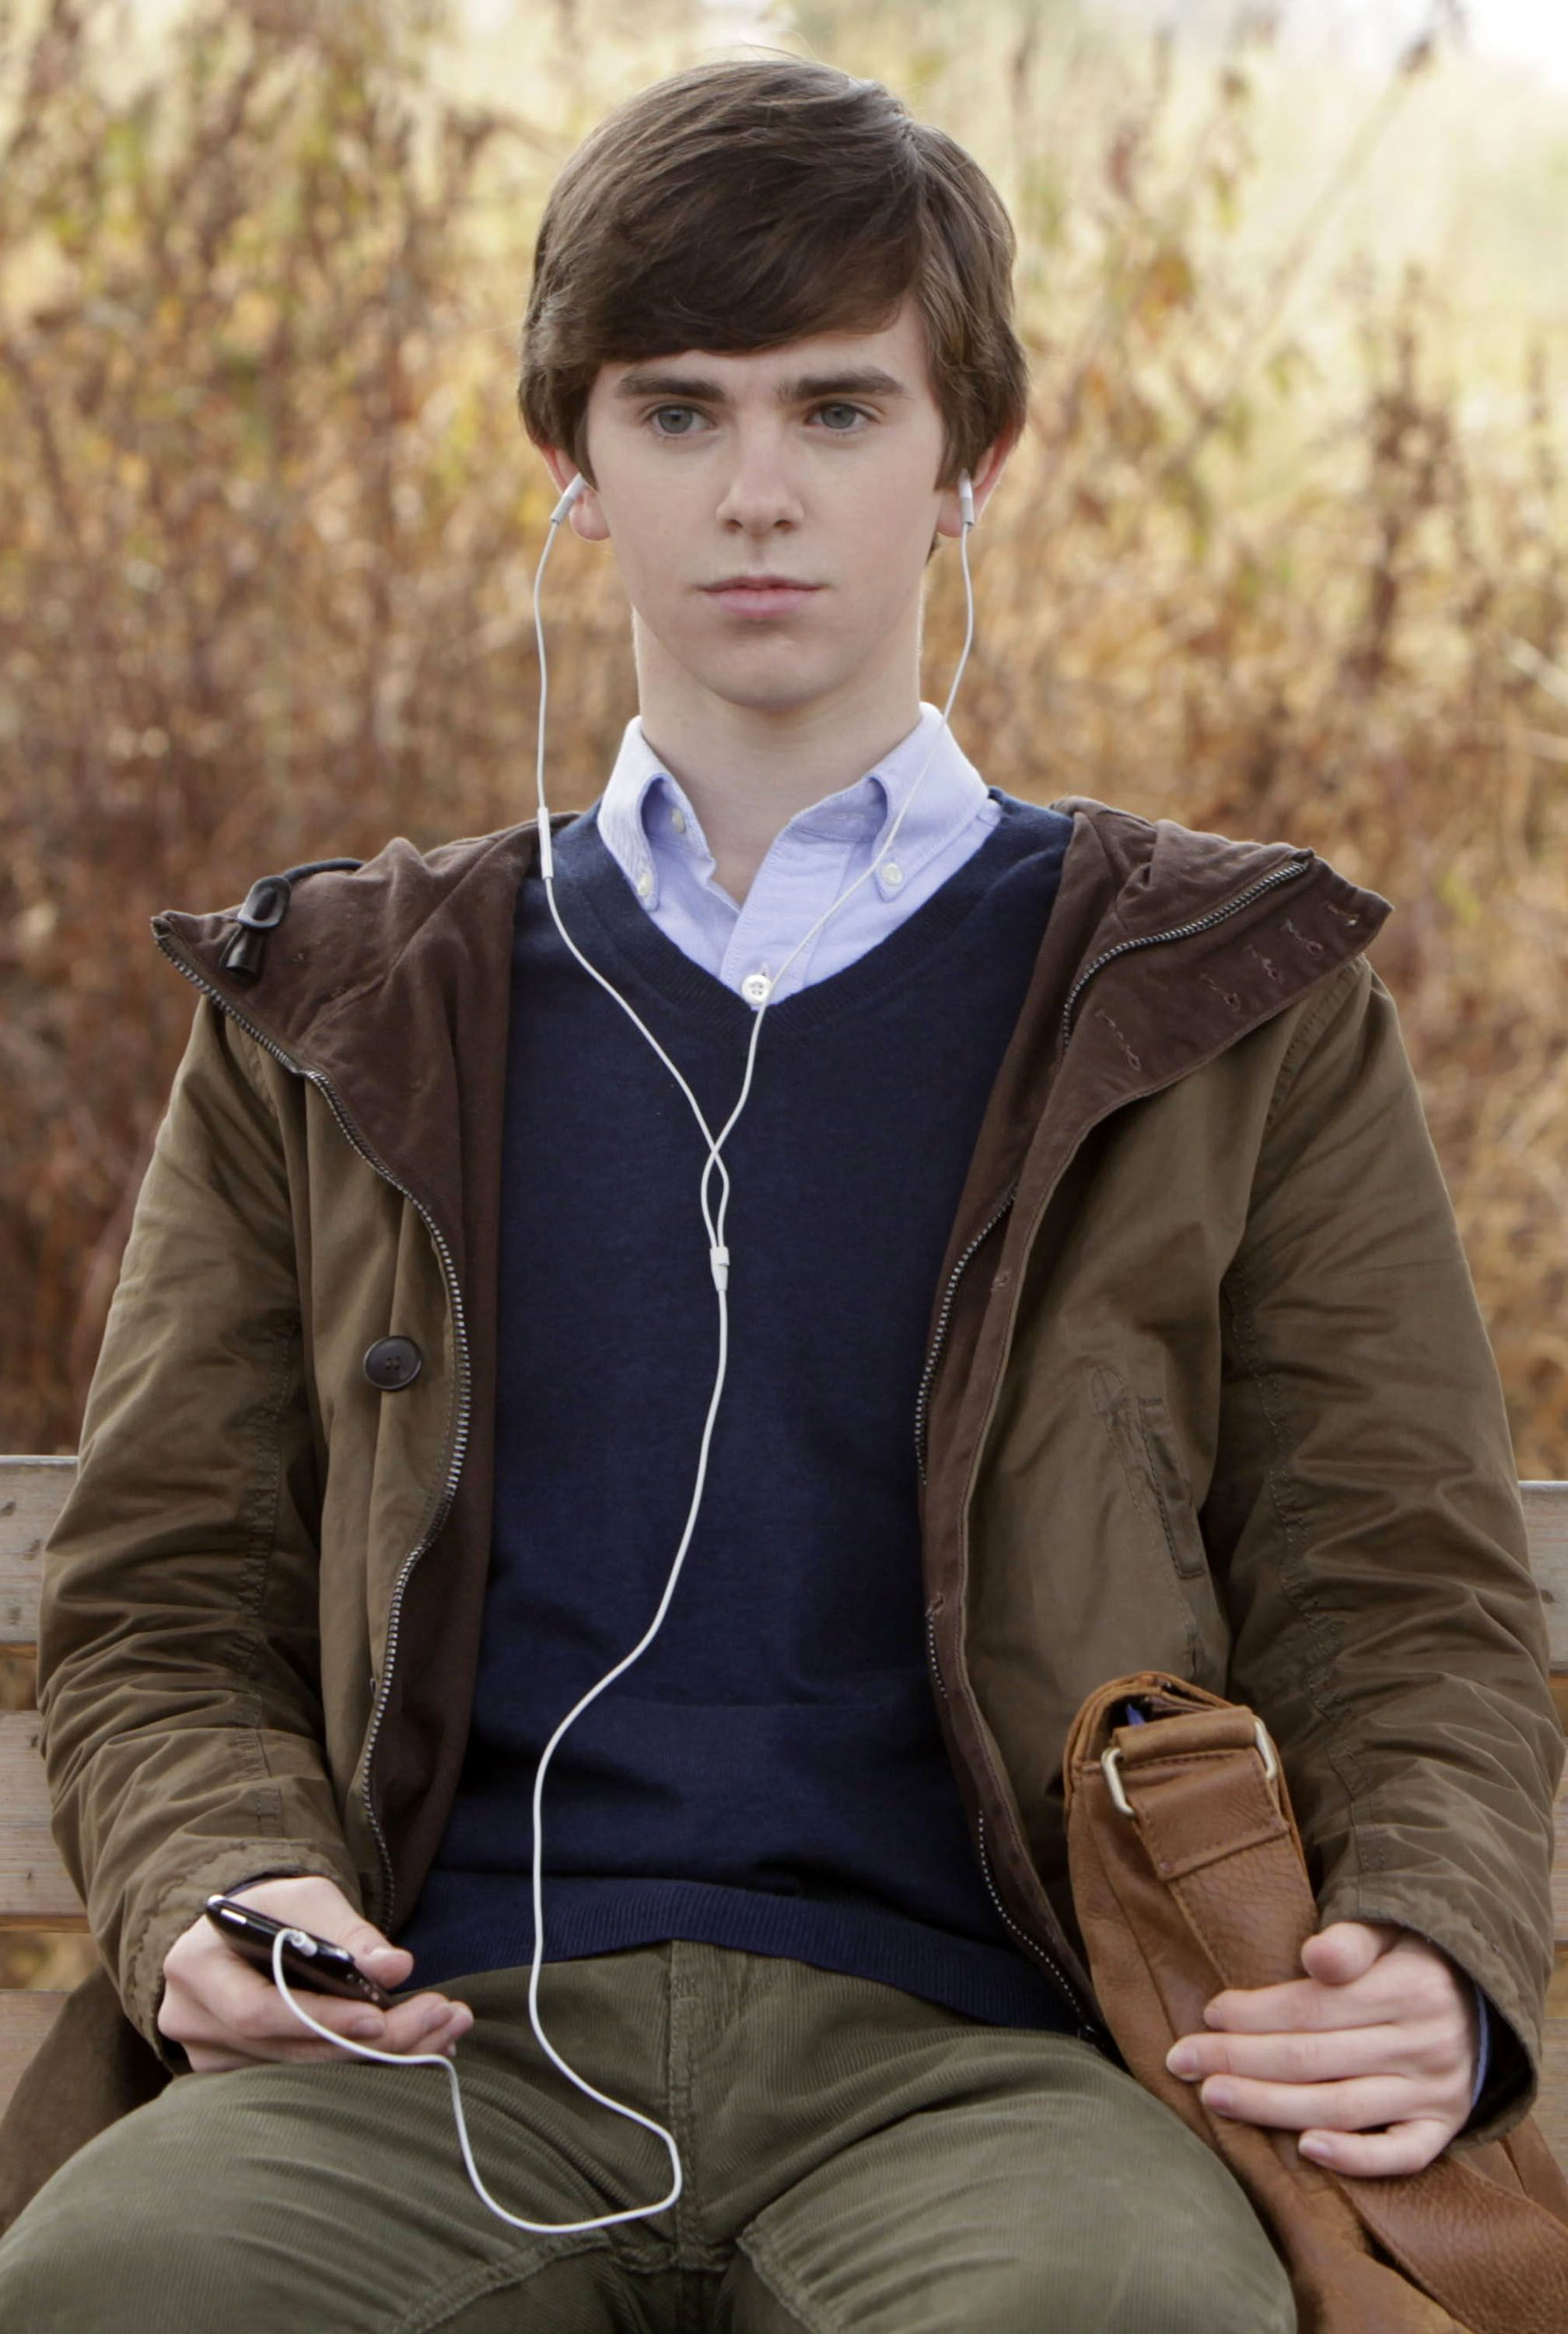 I seriously want to know what this guy is listening to for Freddie highmore movies and tv shows